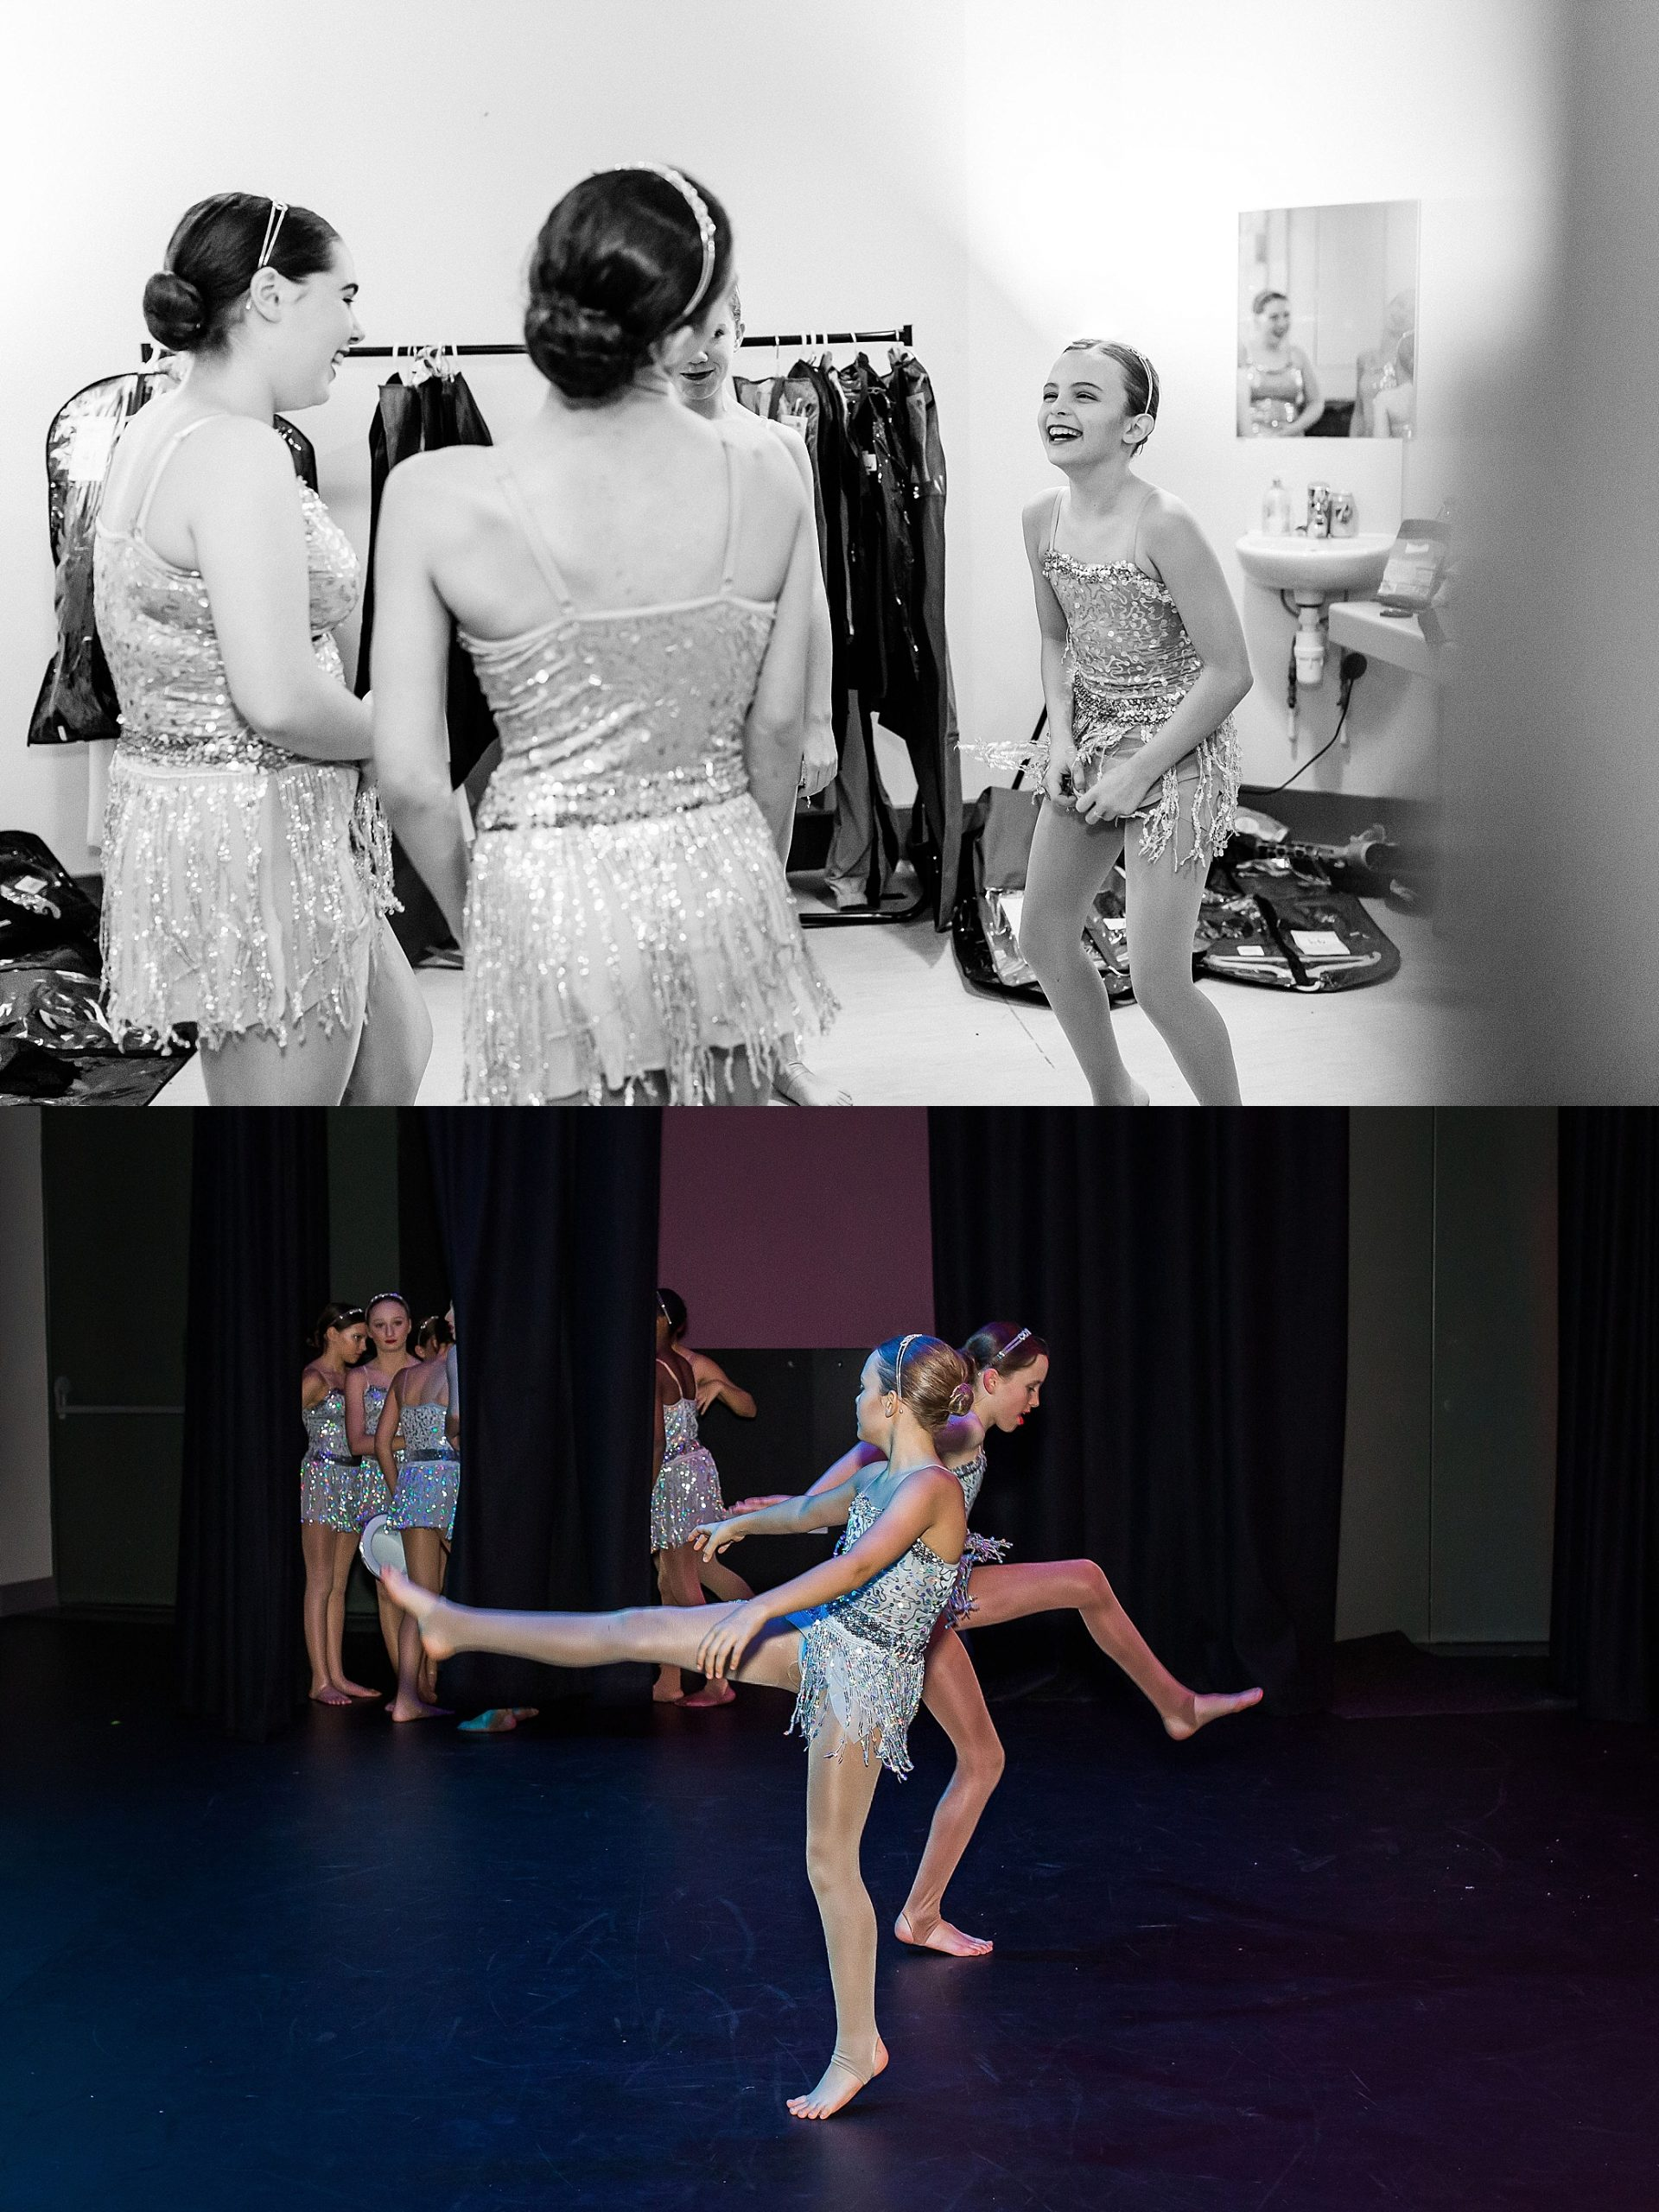 Dancers preparing for their performance at The Exchange theatre in Twickenham